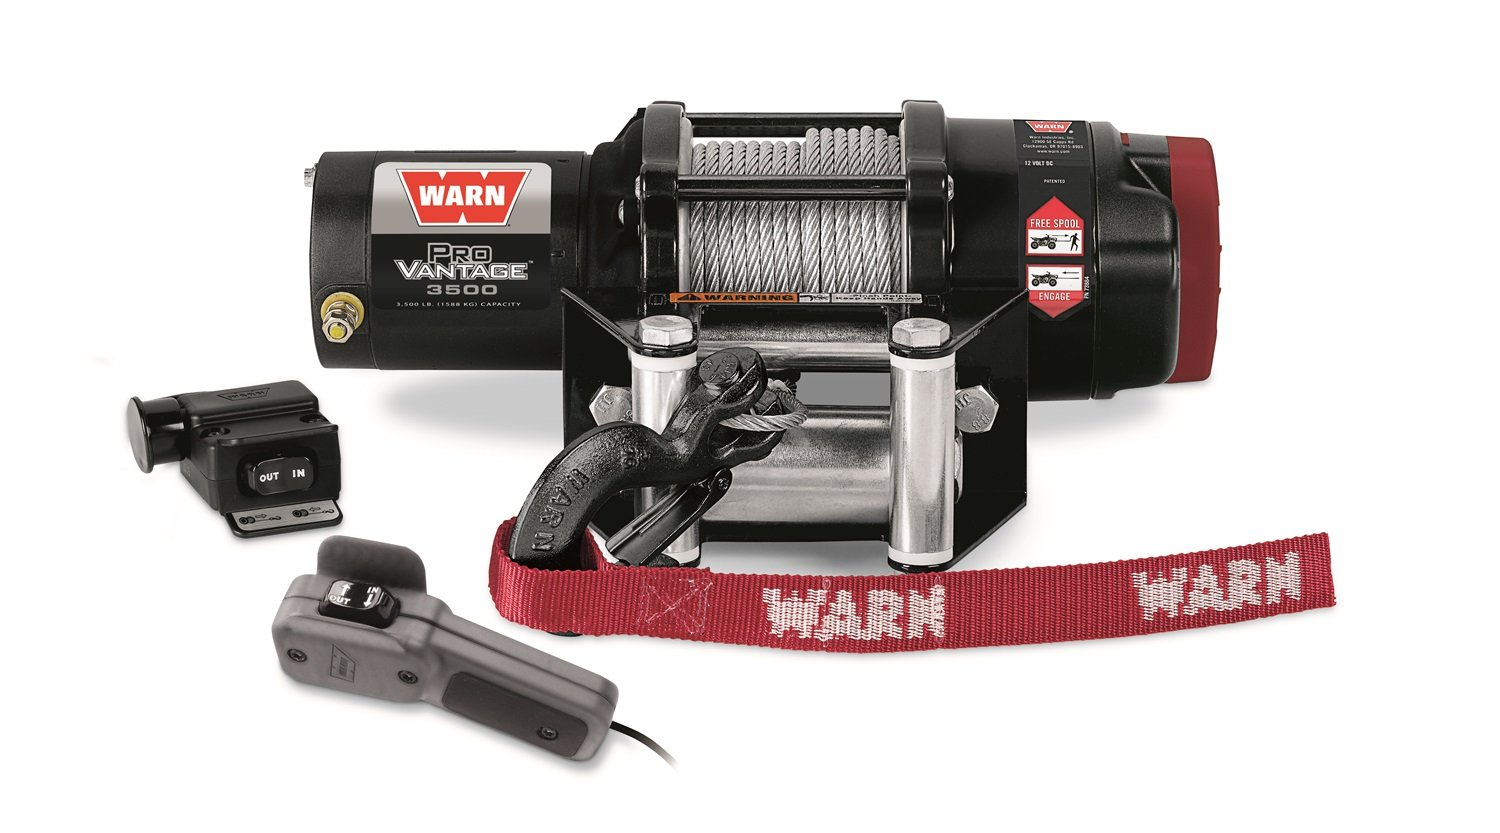 WARN 90350 ProVantage 3500 Winch - 3500 lb. Capacity